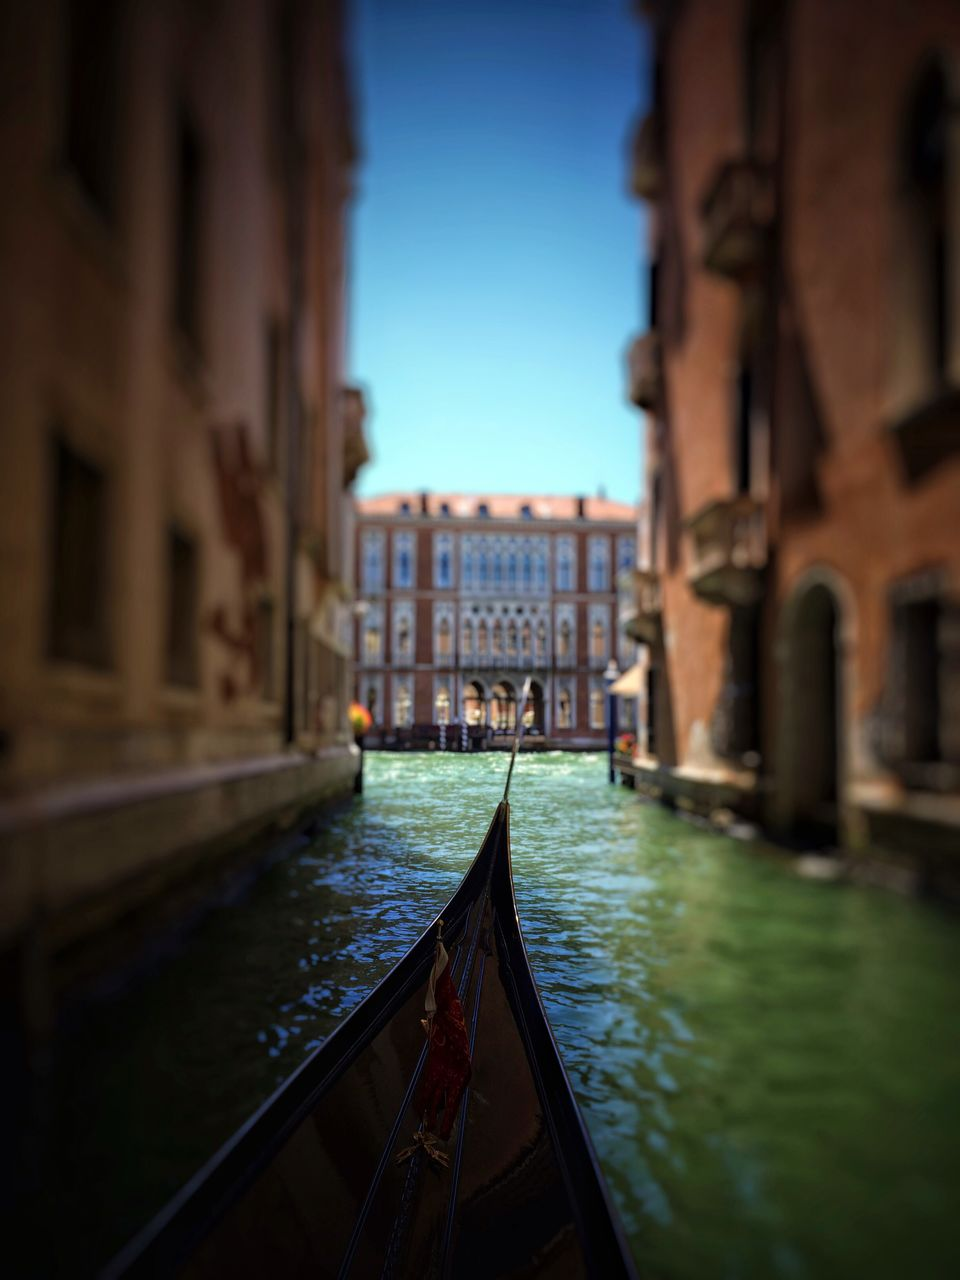 architecture, built structure, building exterior, canal, water, travel destinations, transportation, gondola, travel, gondola - traditional boat, nautical vessel, day, outdoors, city, sky, clear sky, no people, tilt-shift